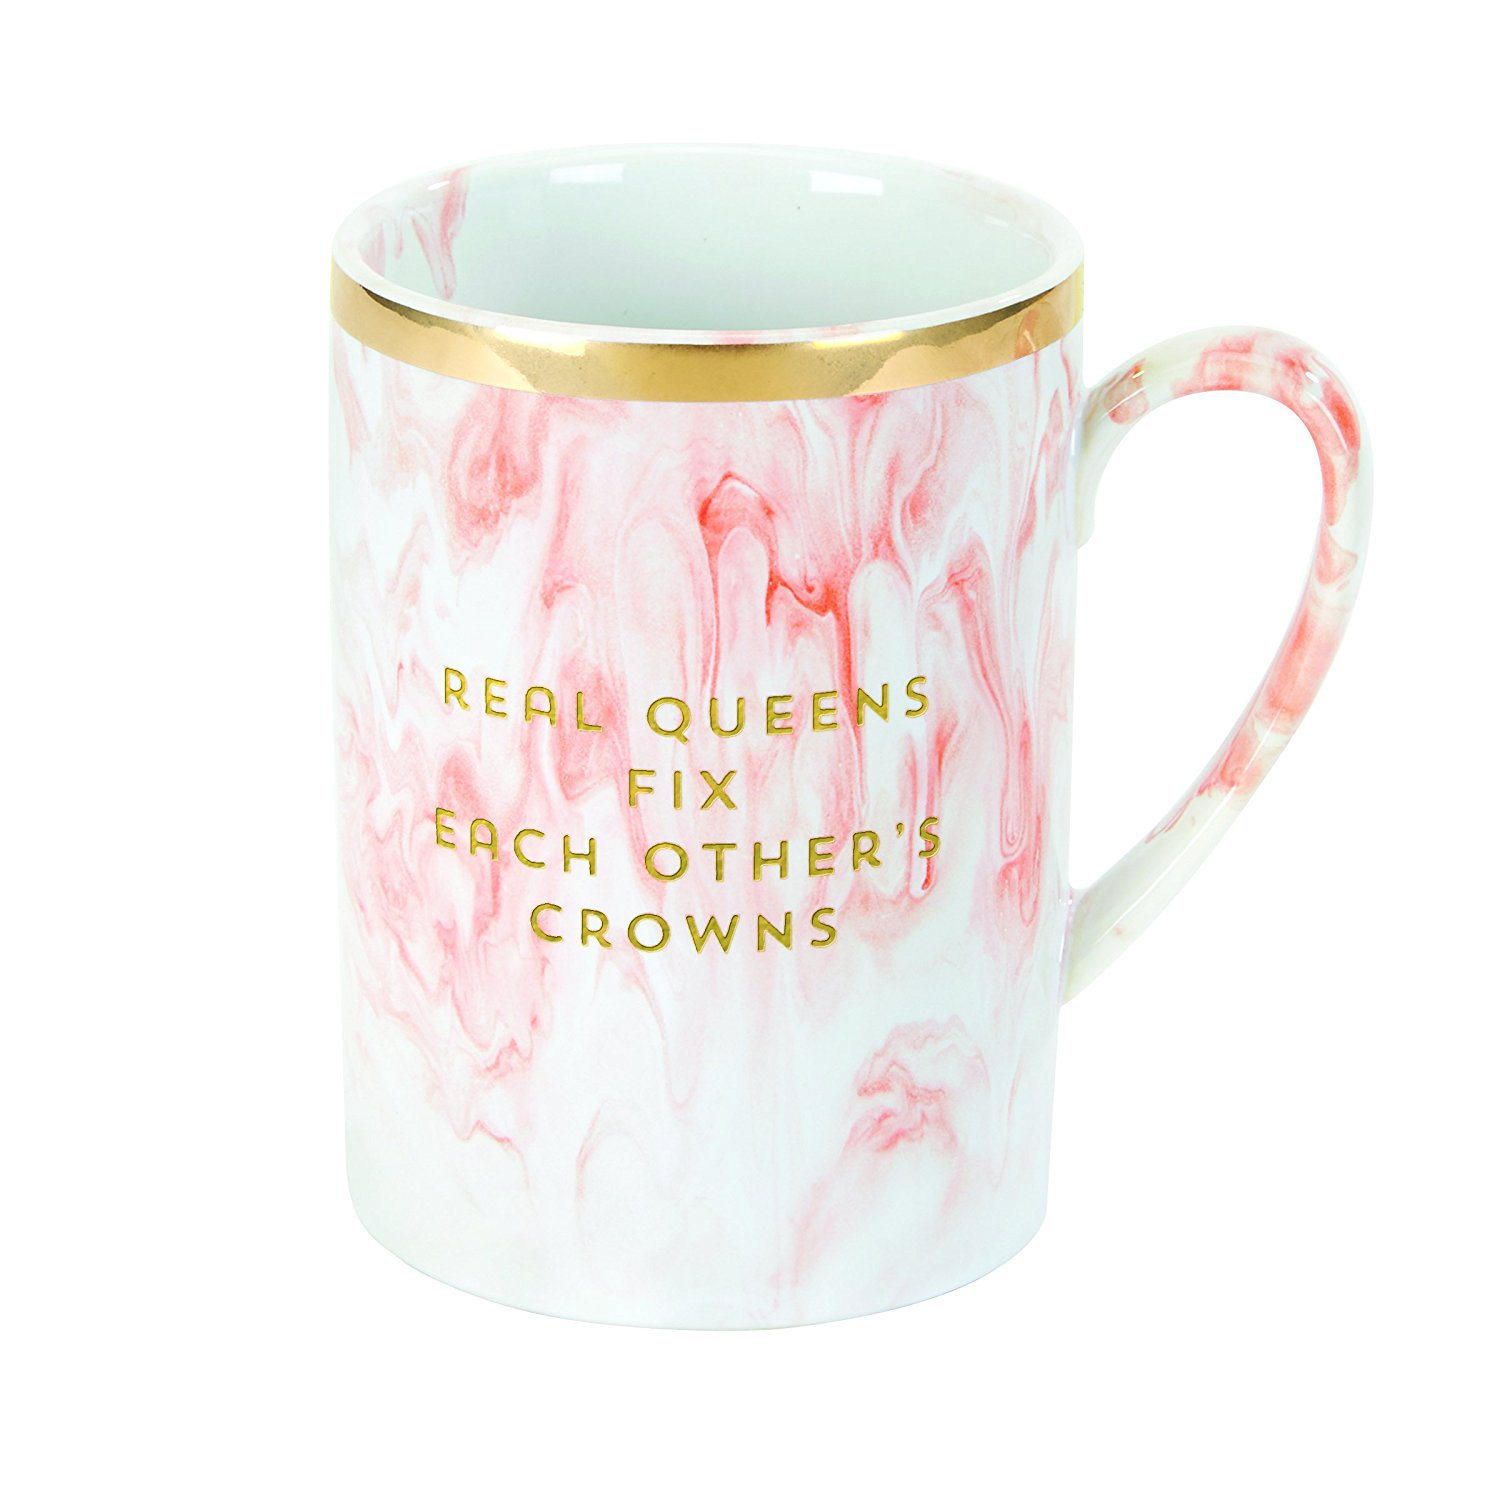 """C.R. Gibson 16 oz Stoneware Marble Coffee Mug, Dishwasher & Microwave Safe, Measures 4.6"""" W x 3.25"""" - Real Queens Fix Each Other's Crowns"""